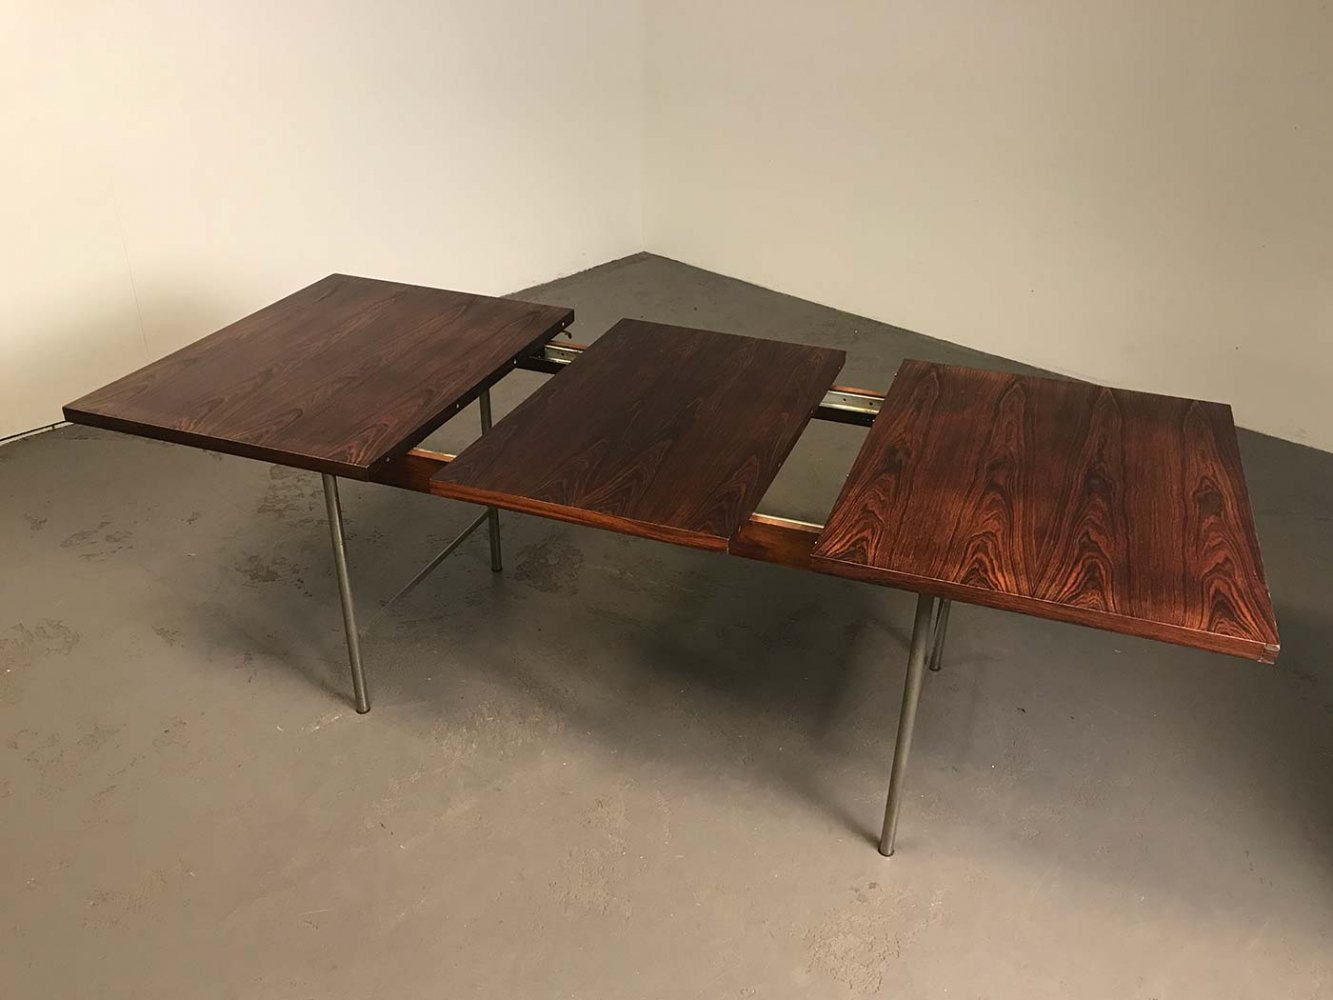 SM08 extendable dining table by Cees Braakman for Pastoe, 1964